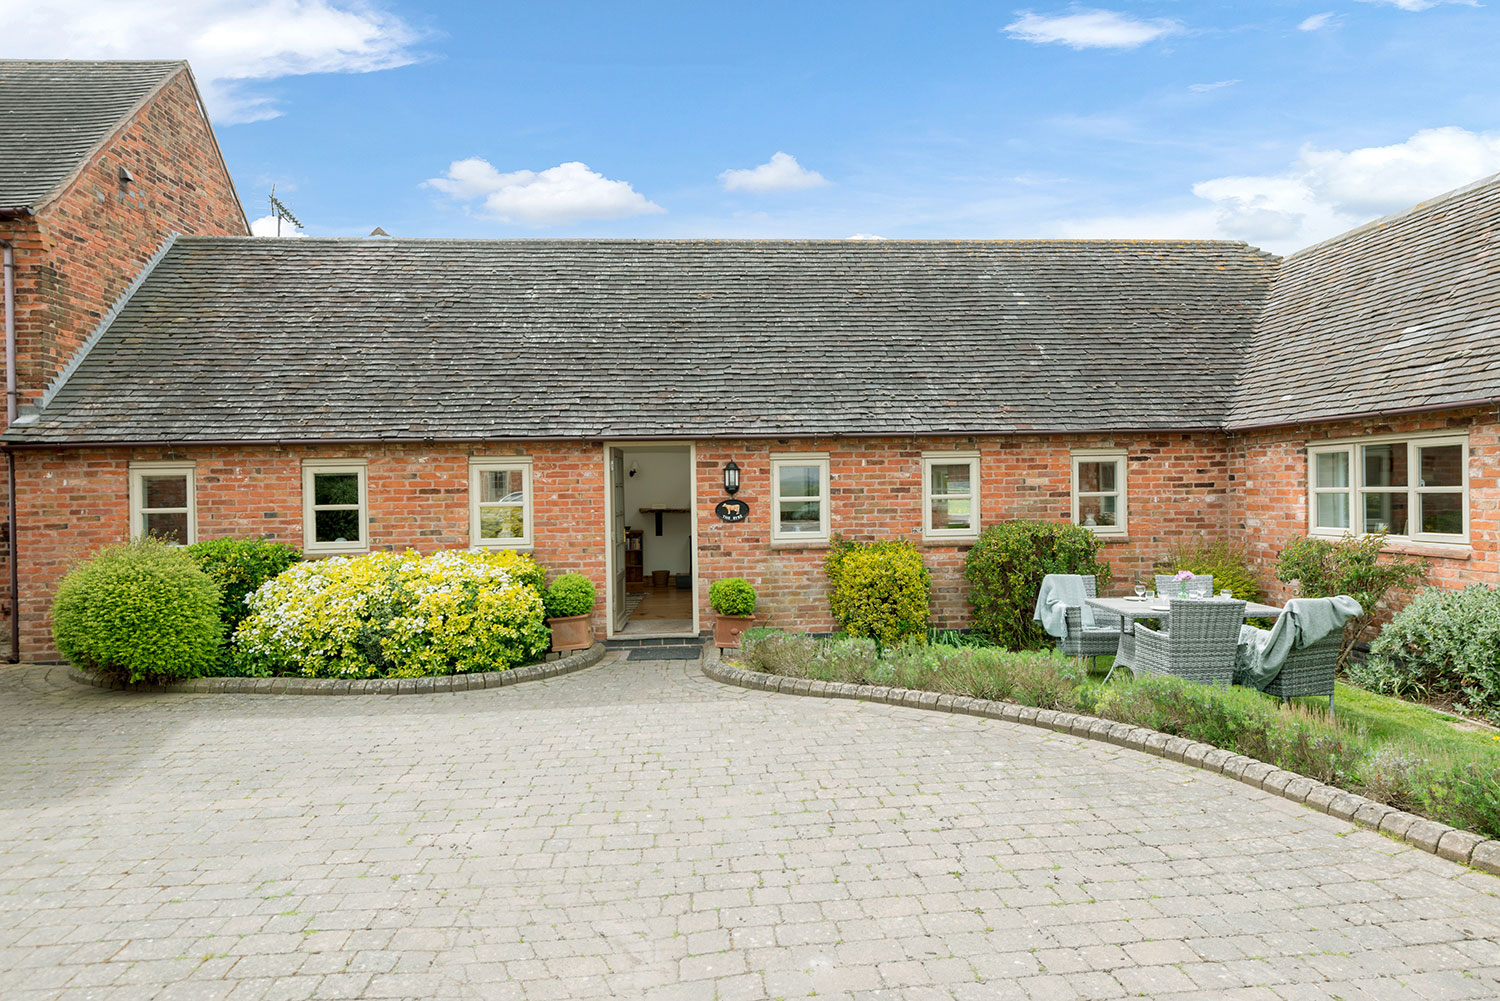 Fully accessible self-catering cottages in Leicestershire   Upper Rectory Farm Cottages